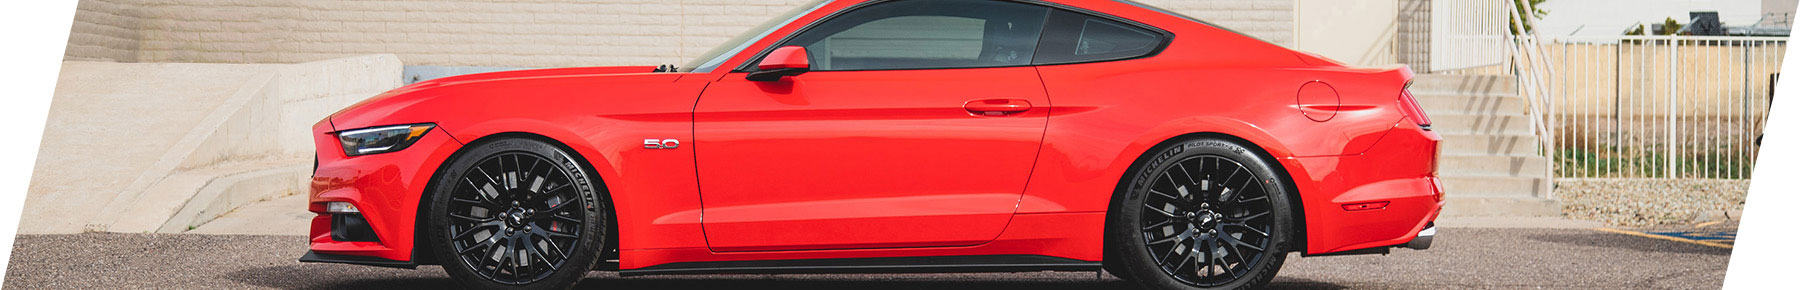 2015-2017 Mustang GT 5.0L Performance Parts & Accessories